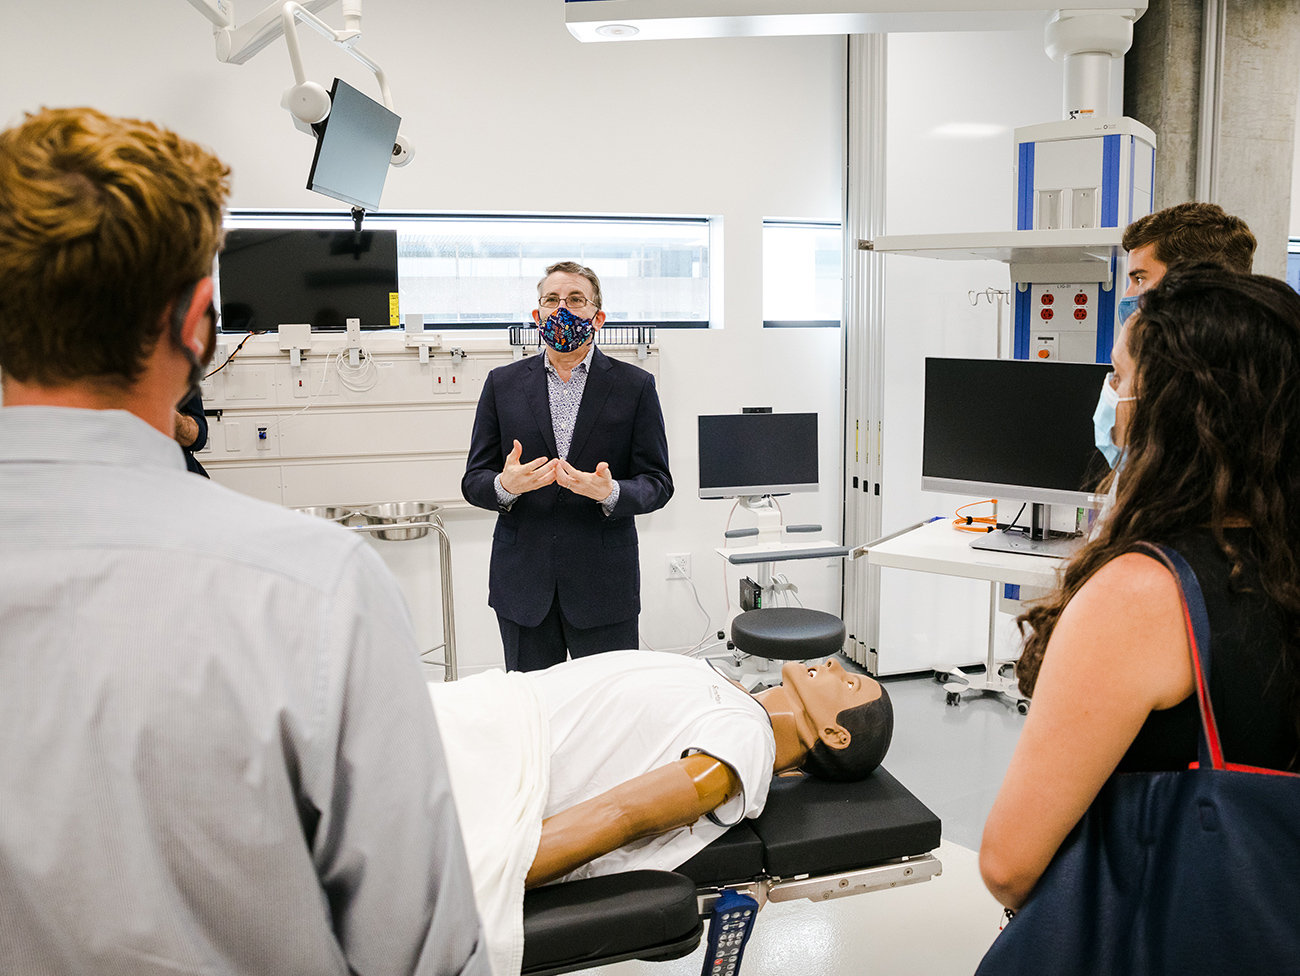 Mark Schuster, MD, PhD, founding dean and chief executive officer, leads students from the school's inaugural class on a tour of the simulation lab.